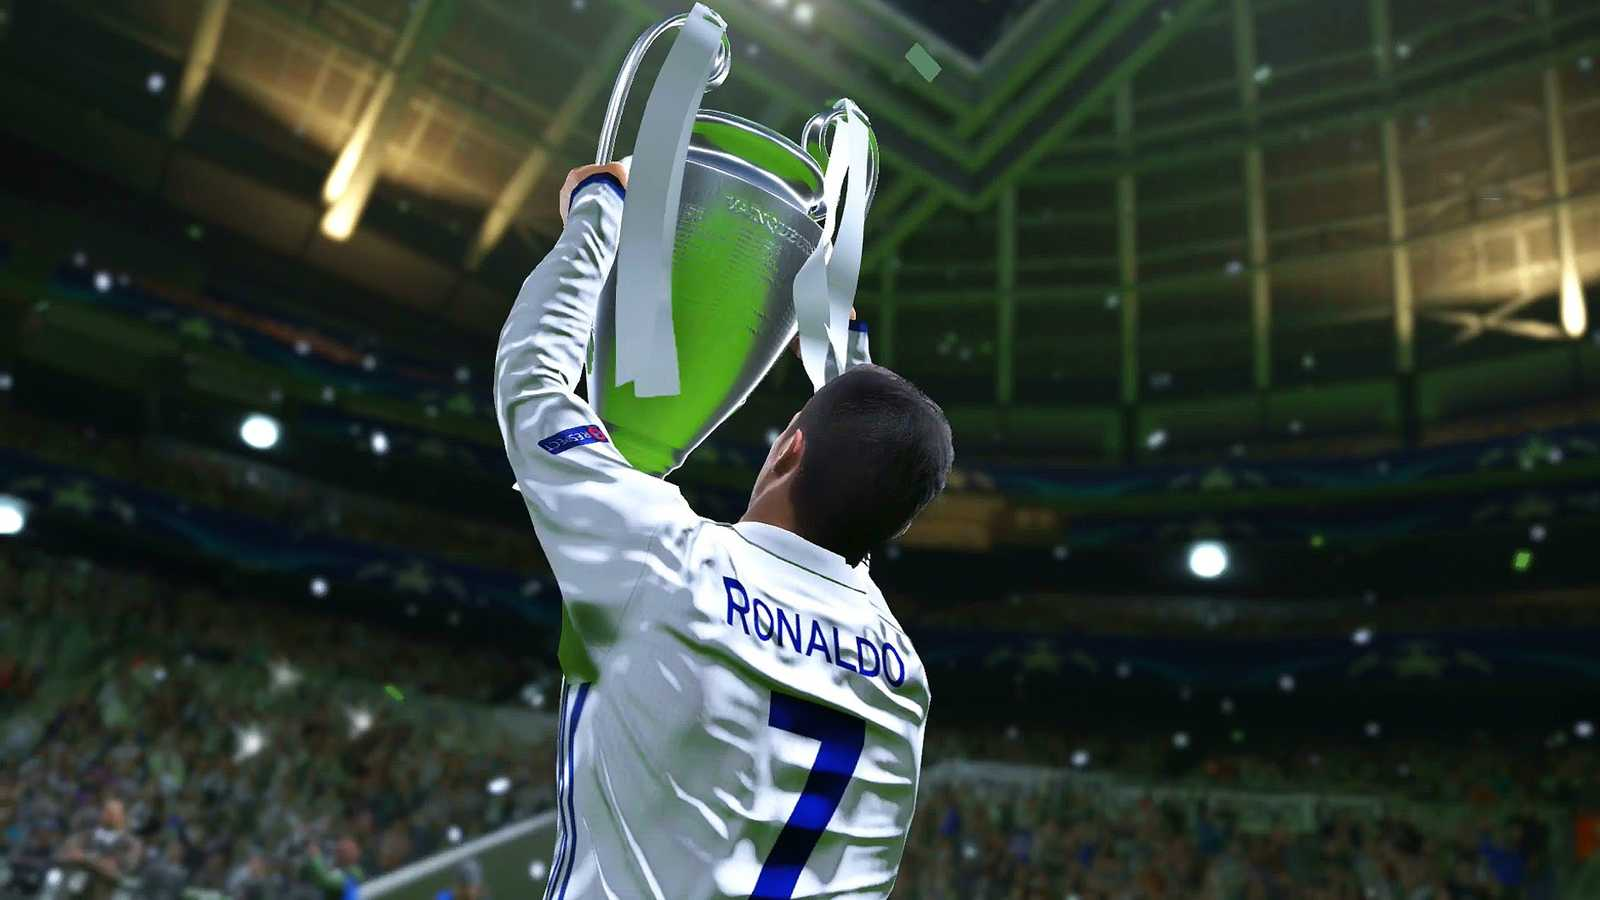 Champions League: The Champions League Could Return To FIFA In 2018